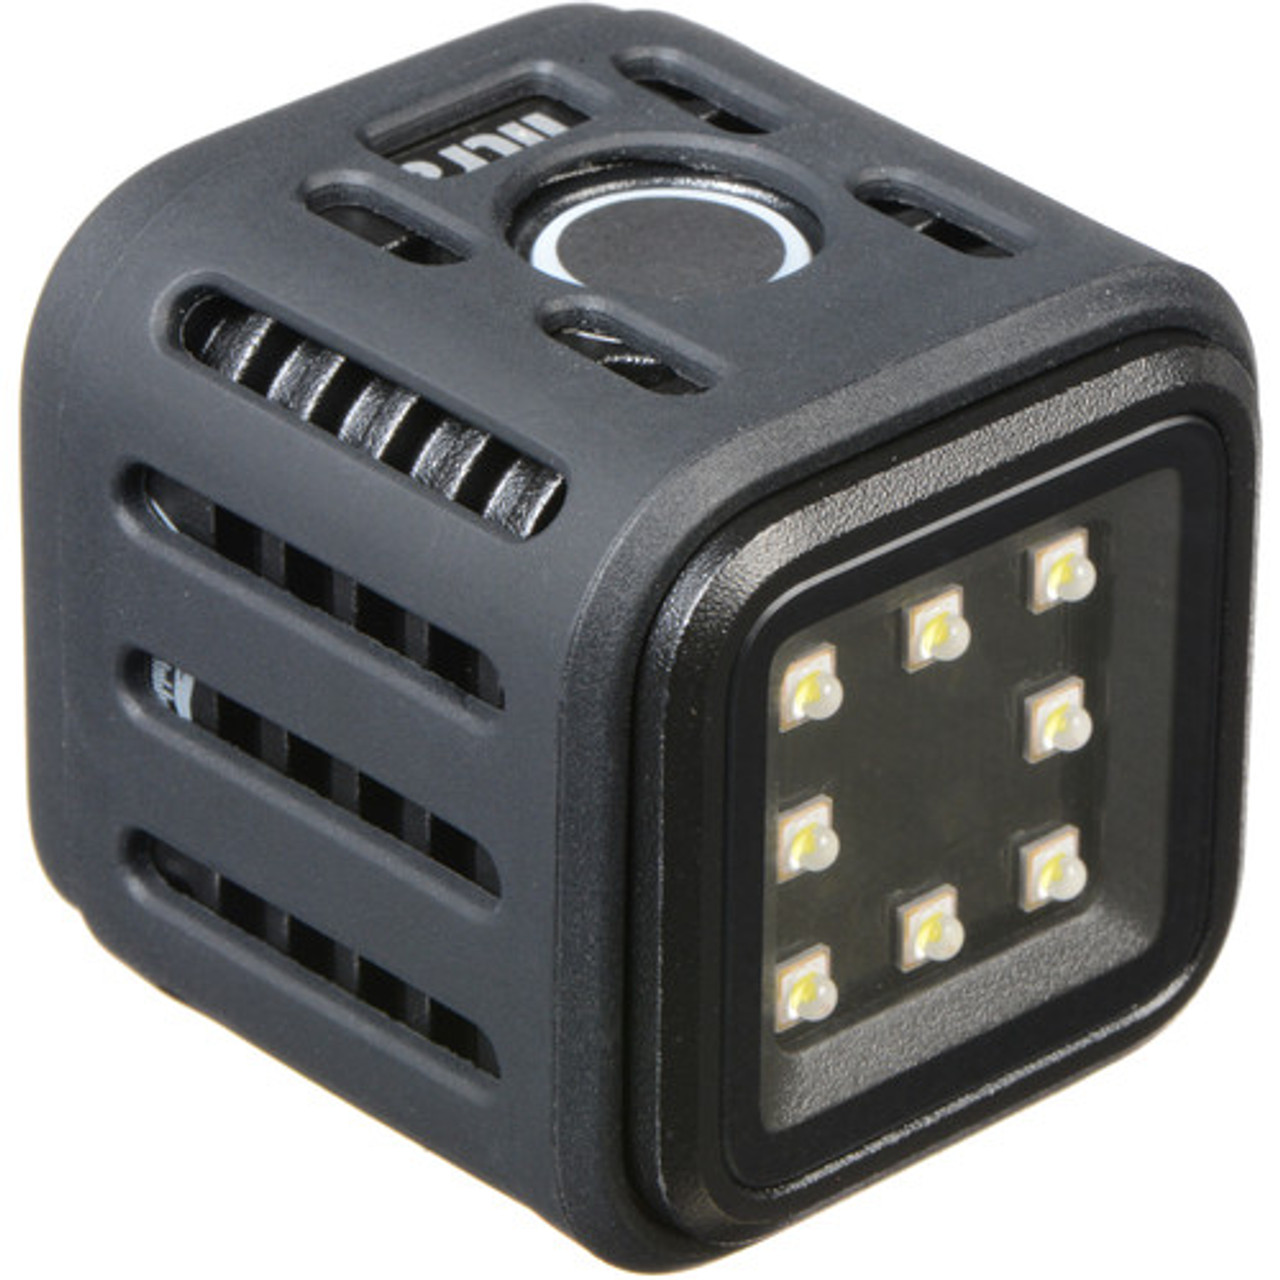 LitraTorch Adventure Photo and Video Light (Black)